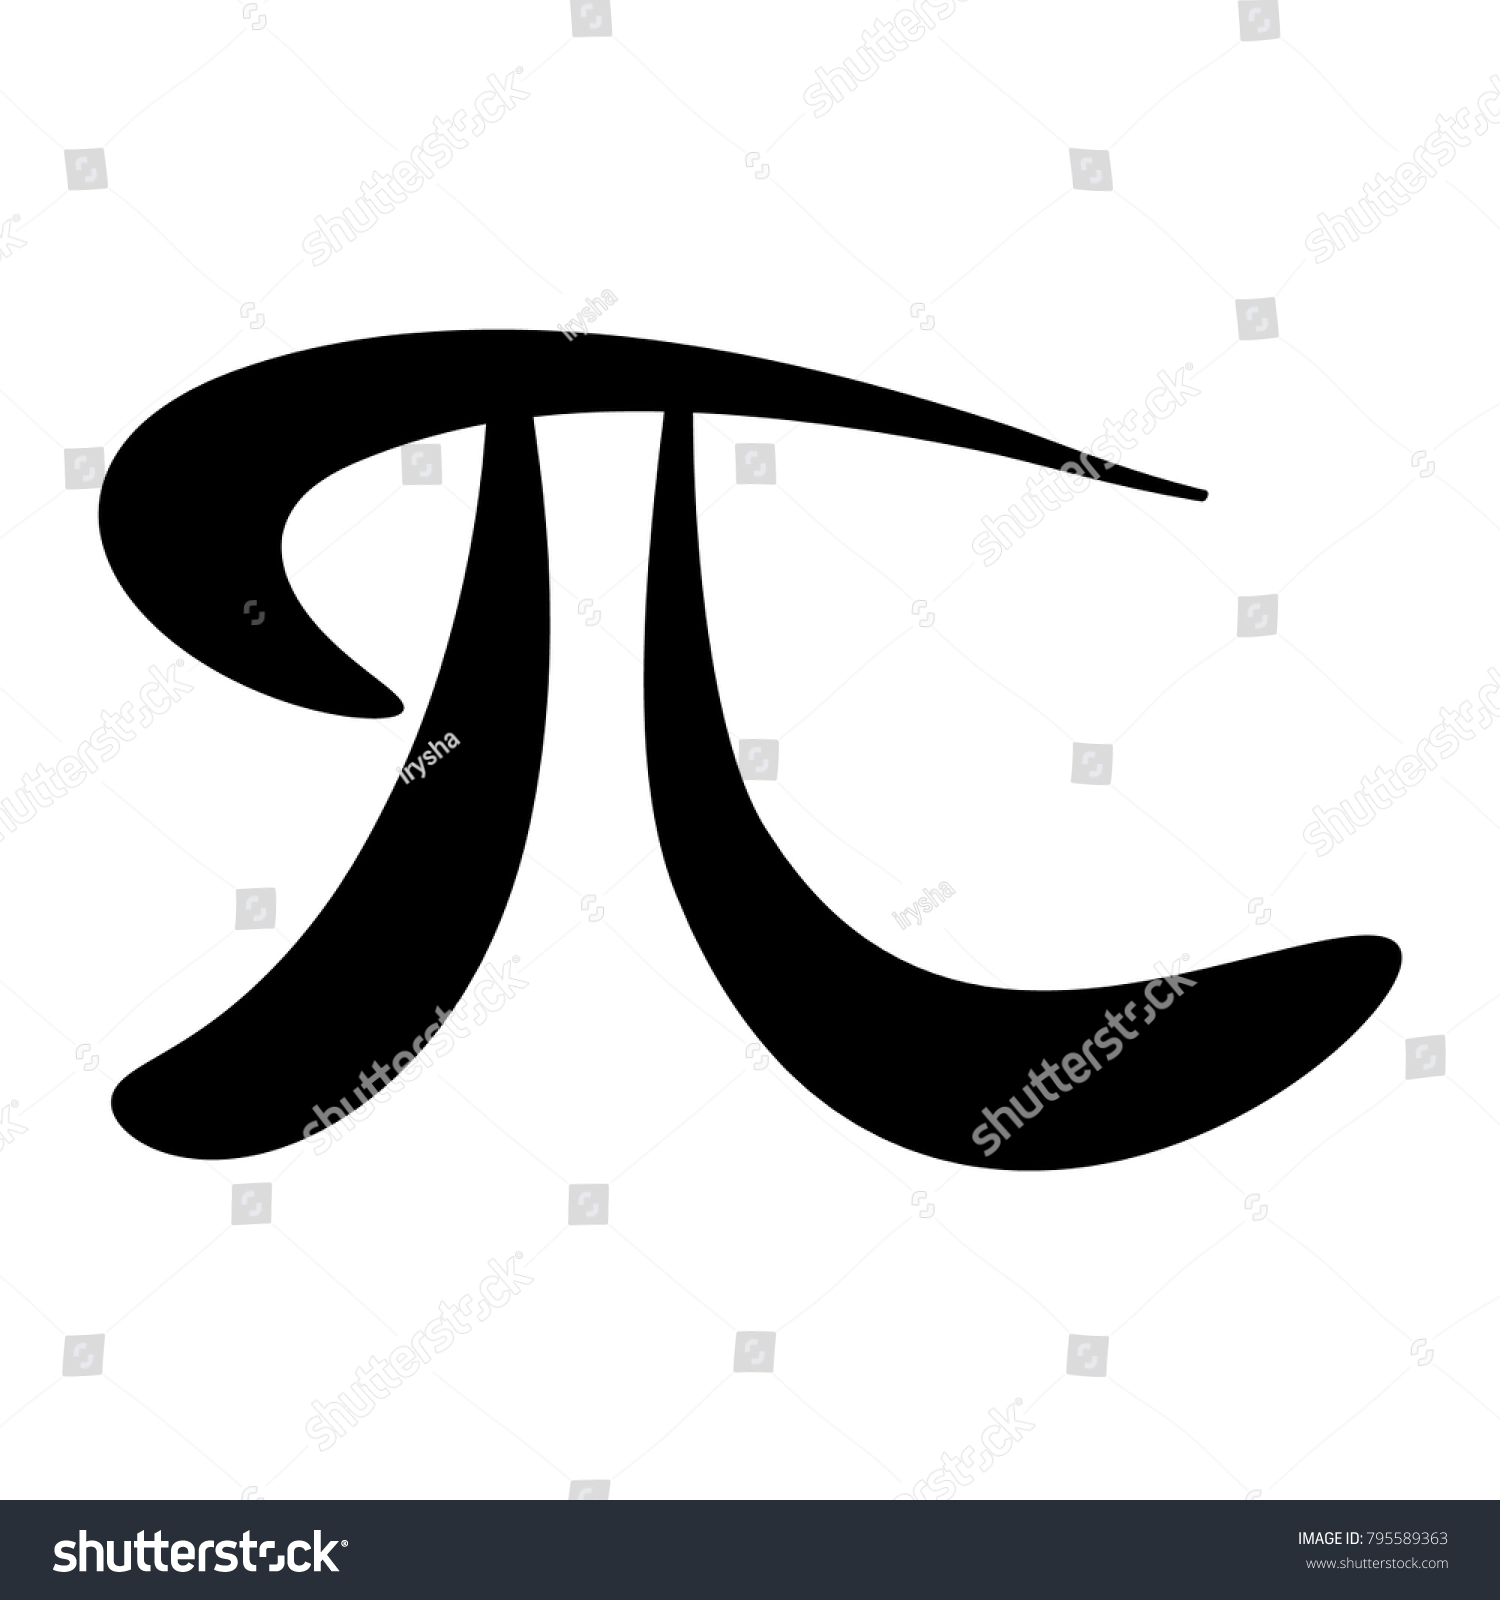 Greek pi symbol choice image symbol and sign ideas pi symbol keyboard images symbol and sign ideas maths symbol pi gallery symbol design logo pi buycottarizona